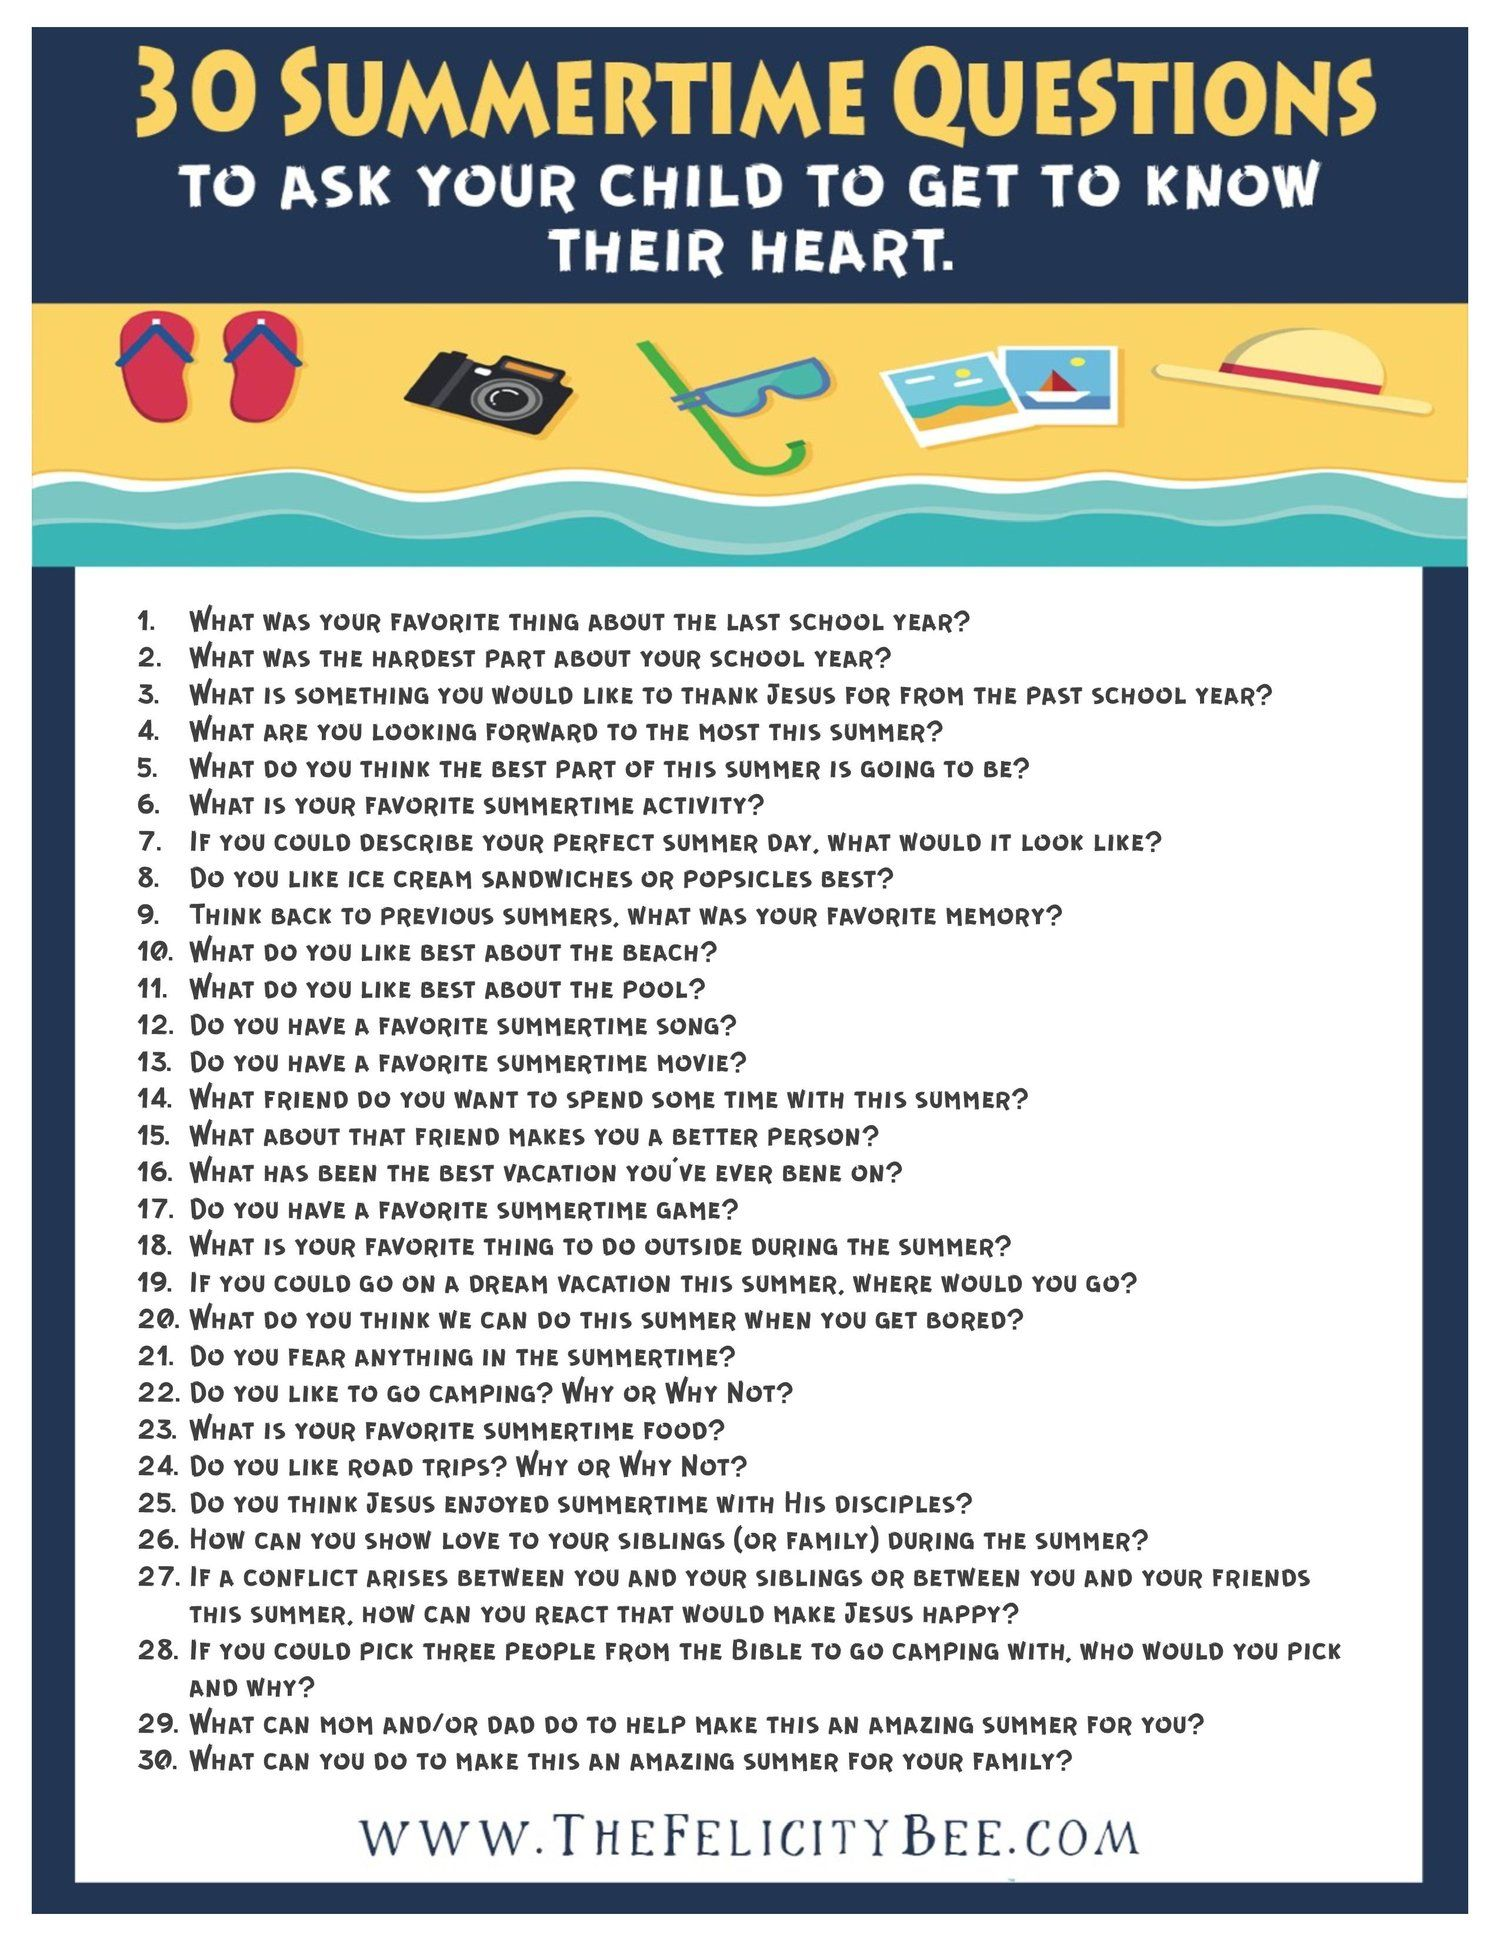 30 Summertime Questions To Ask Your Kids To Get To Know